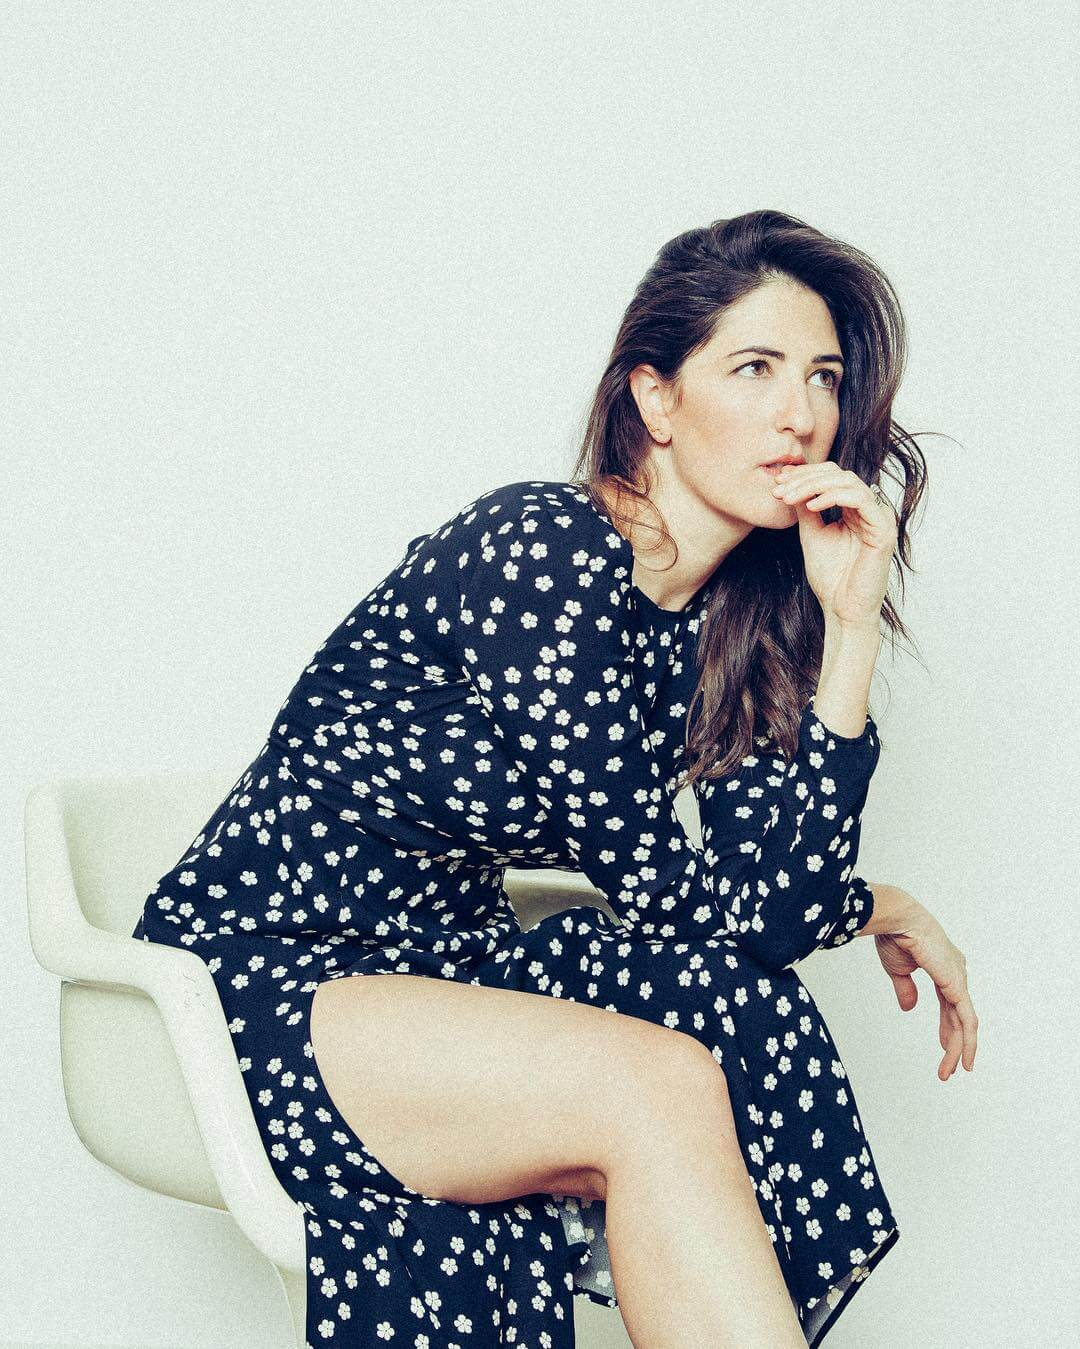 D'Arcy Carden hot thigh